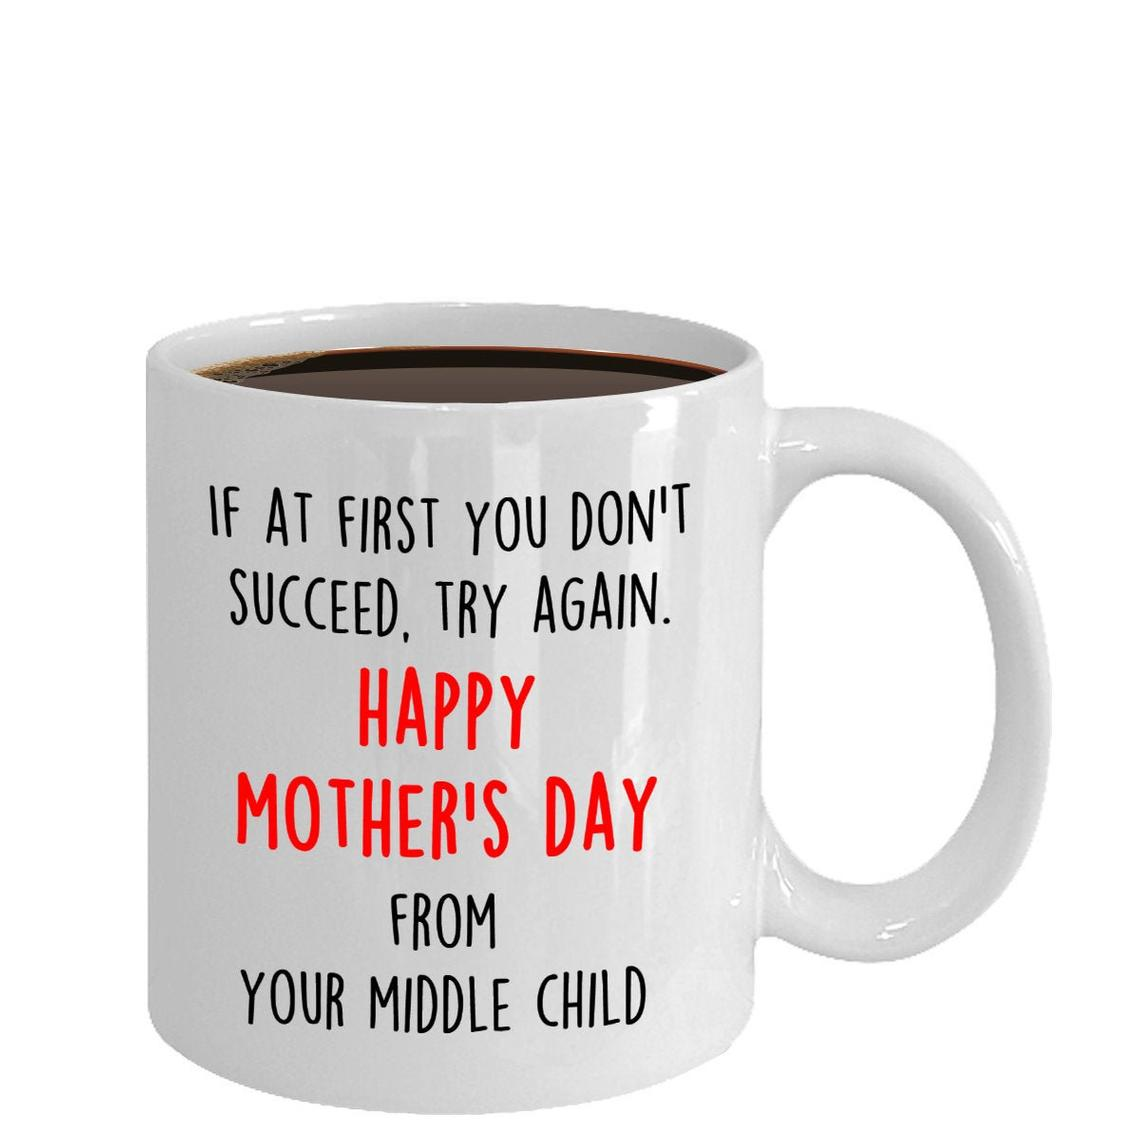 If At First You Don't Succeed, Try Again. Happy Mother's Day From Your MIddle Child Mug - Gift For Mom